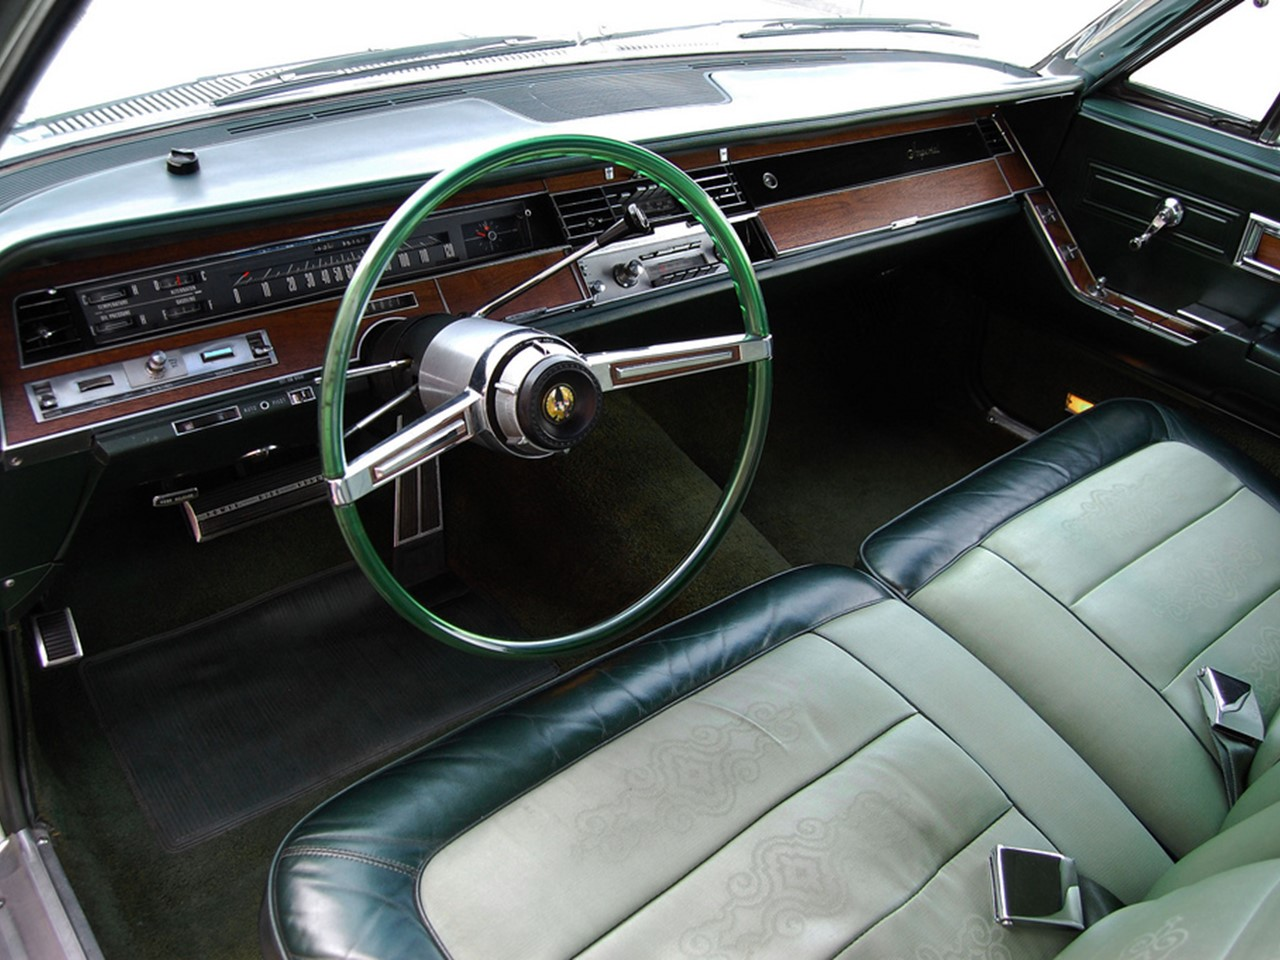 Retrospect 1967 Chrysler Imperial Crown NotoriousLuxury